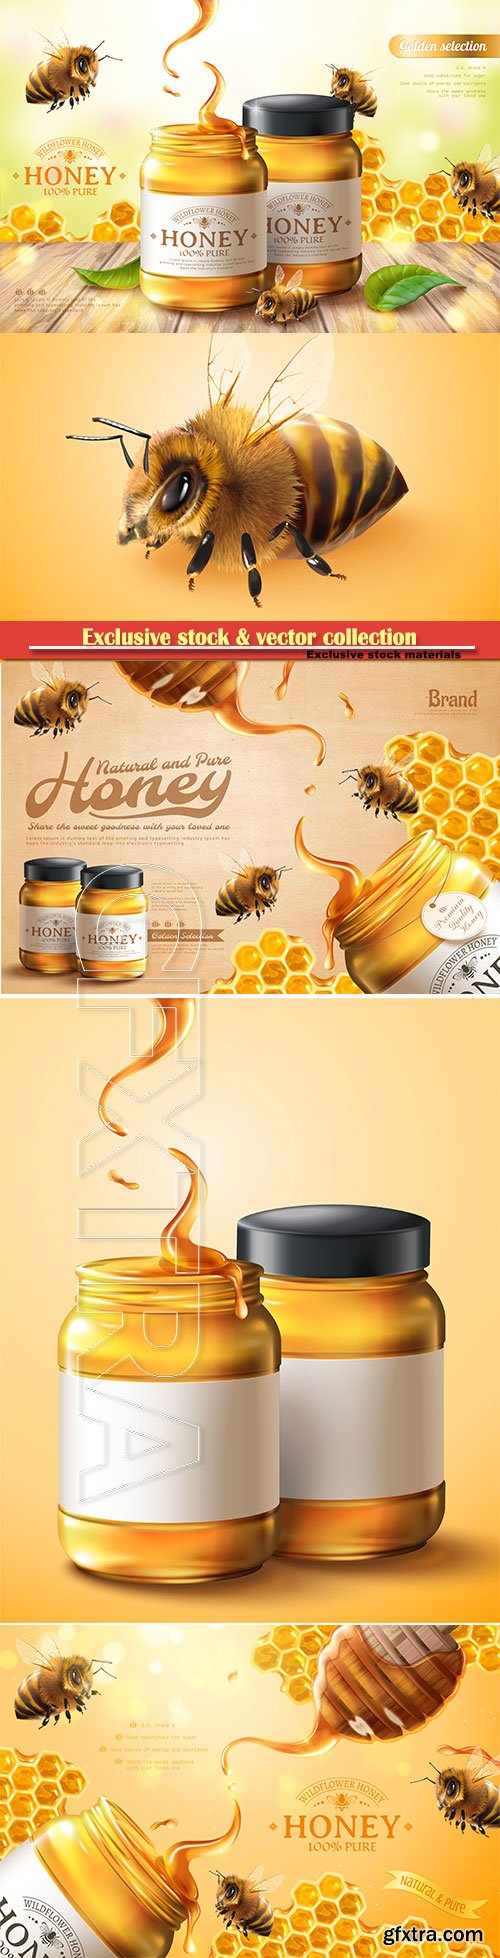 Pure honey ads with bees and honeycomb in 3d vector illustration